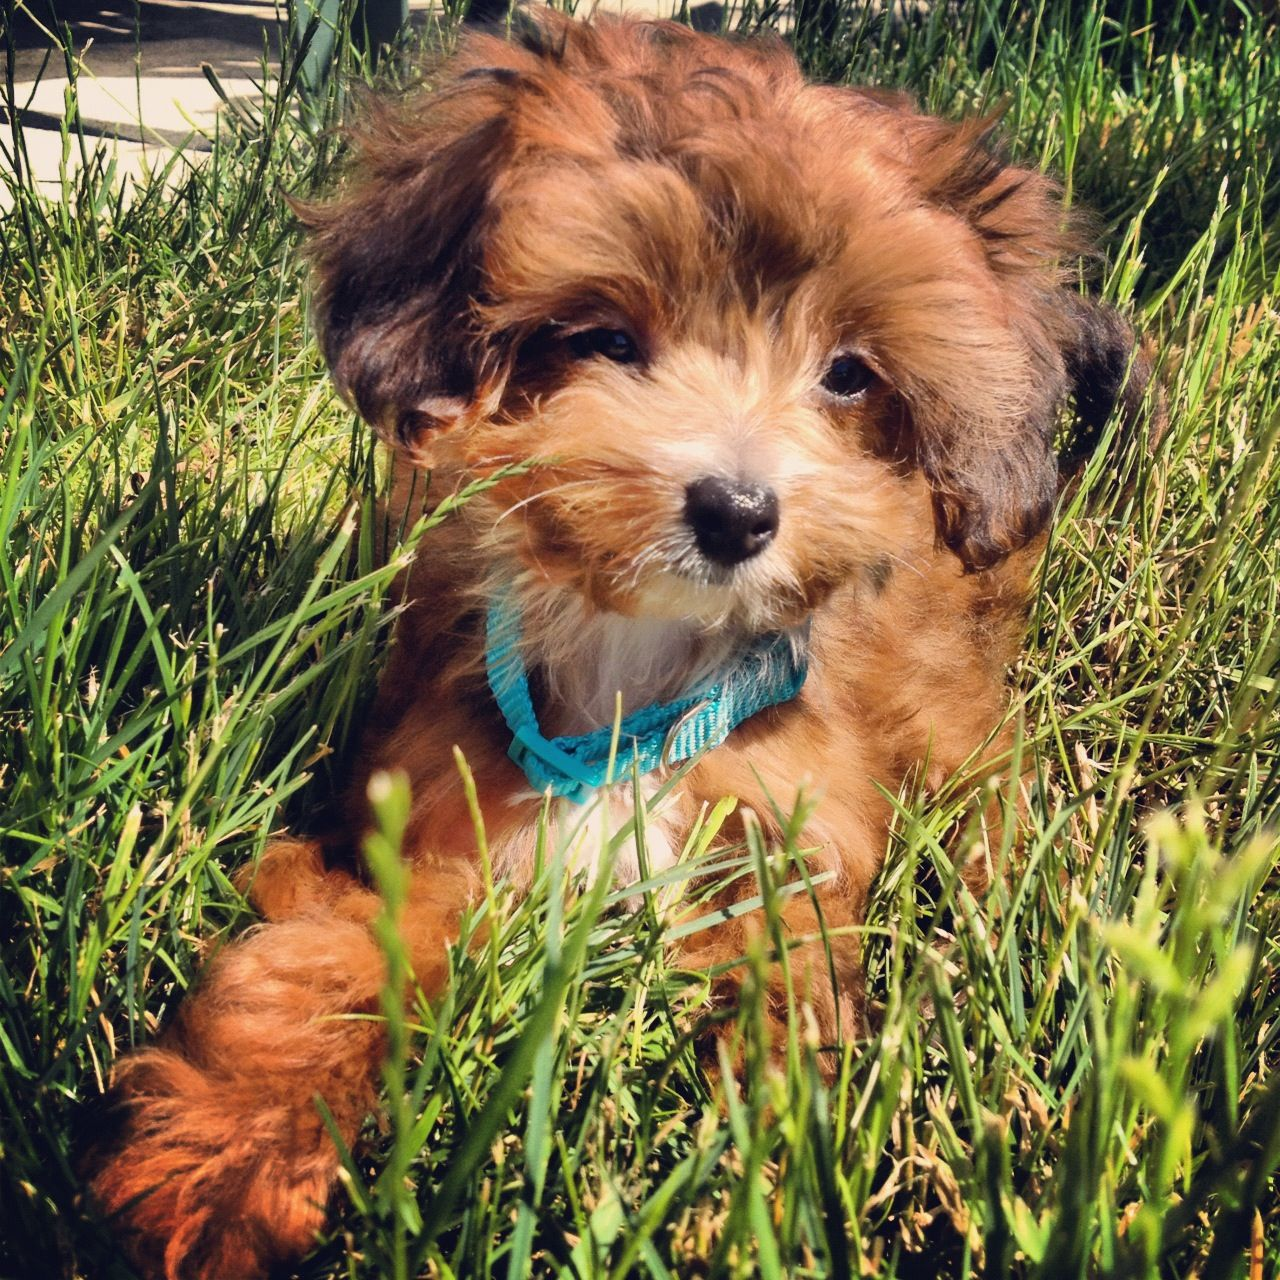 Papipoo Puppies Are A Designer Breed Mixing Papillon Of The Top 5 Most Intellectual Dog Species And A Poodle For Hypo Papillon Dog Cute Dog Mixes Dog Mixes